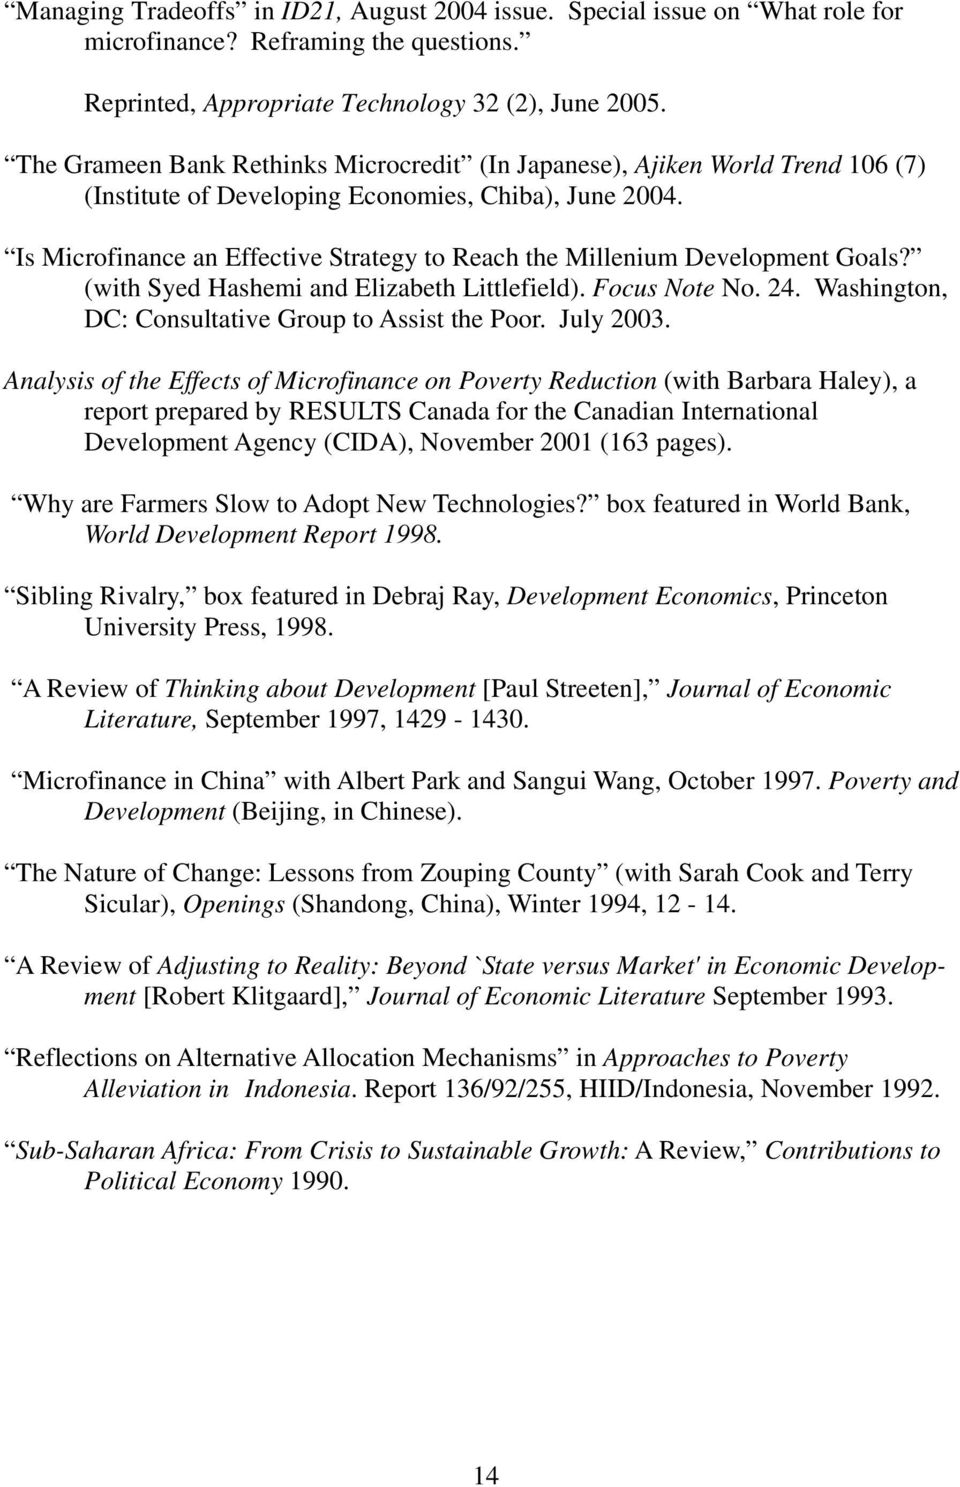 Is Microfinance an Effective Strategy to Reach the Millenium Development Goals? (with Syed Hashemi and Elizabeth Littlefield). Focus Note No. 24. Washington, DC: Consultative Group to Assist the Poor.